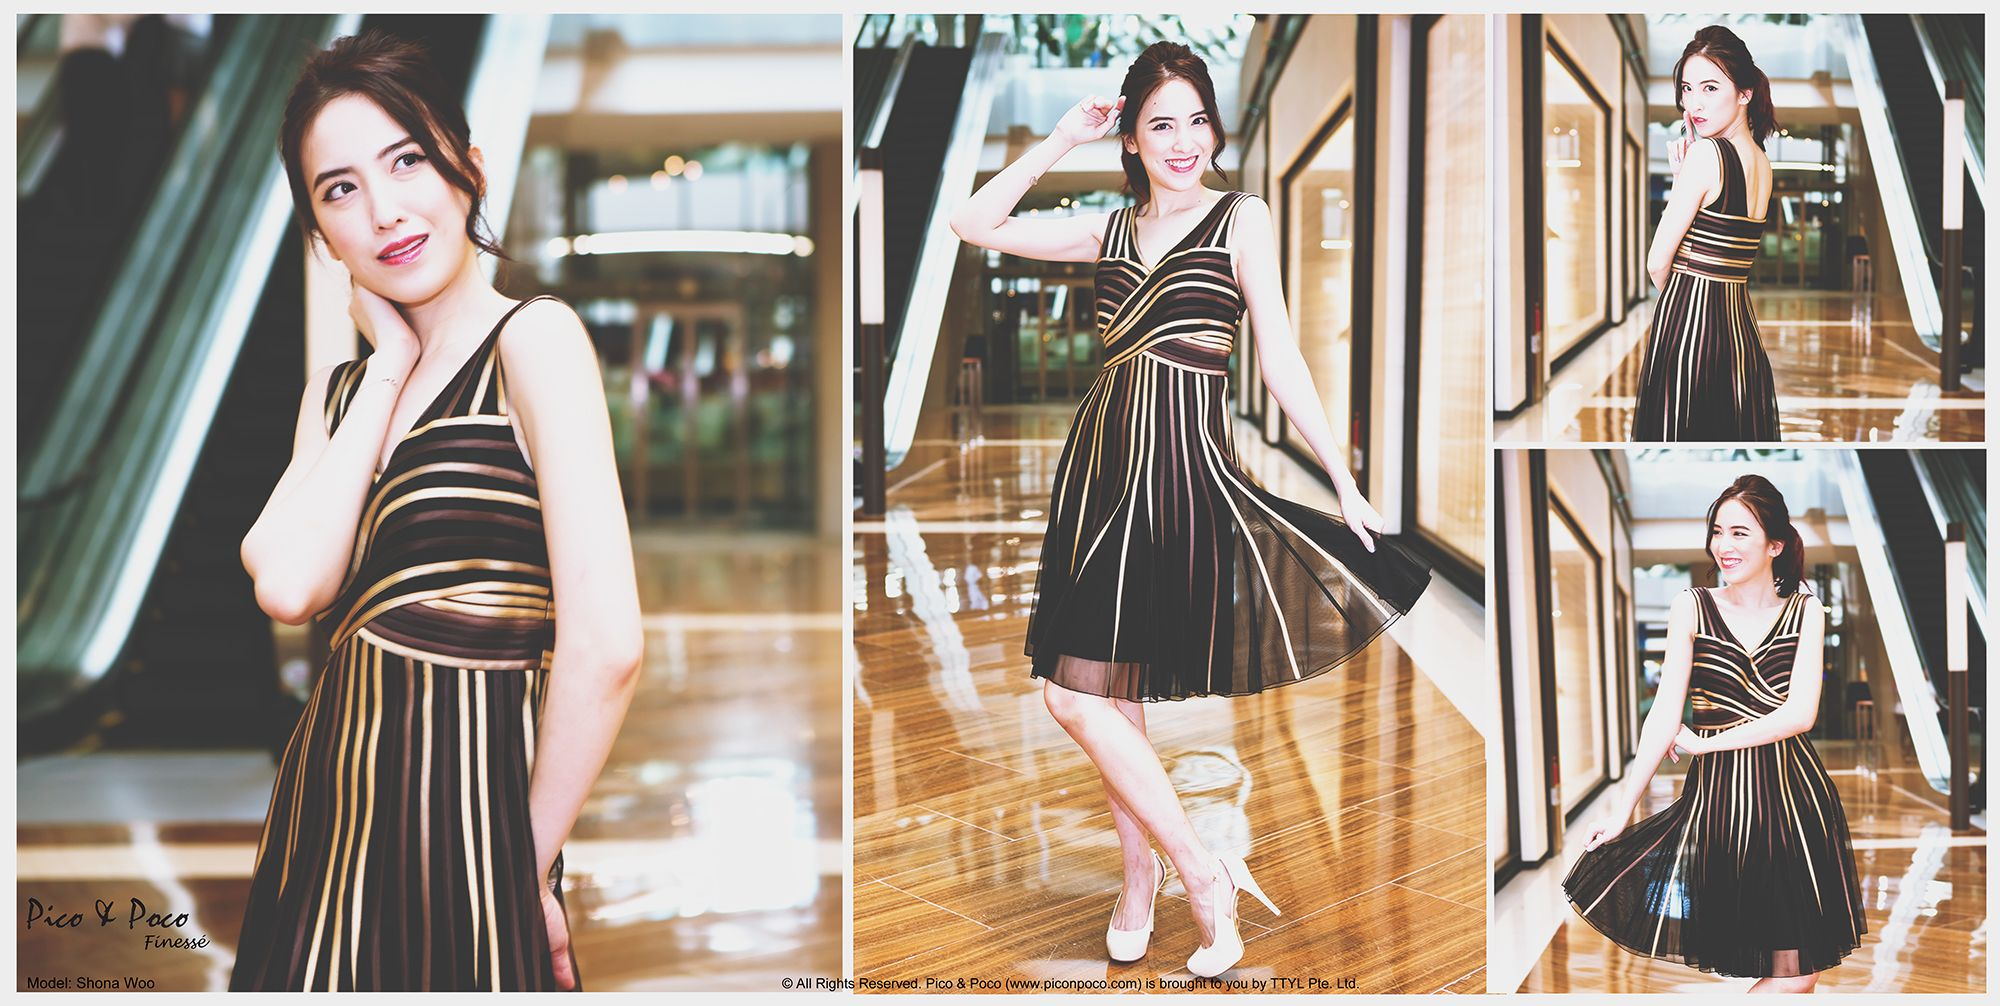 Black dress with brown and gold stripes sewn on tulle netting.jp